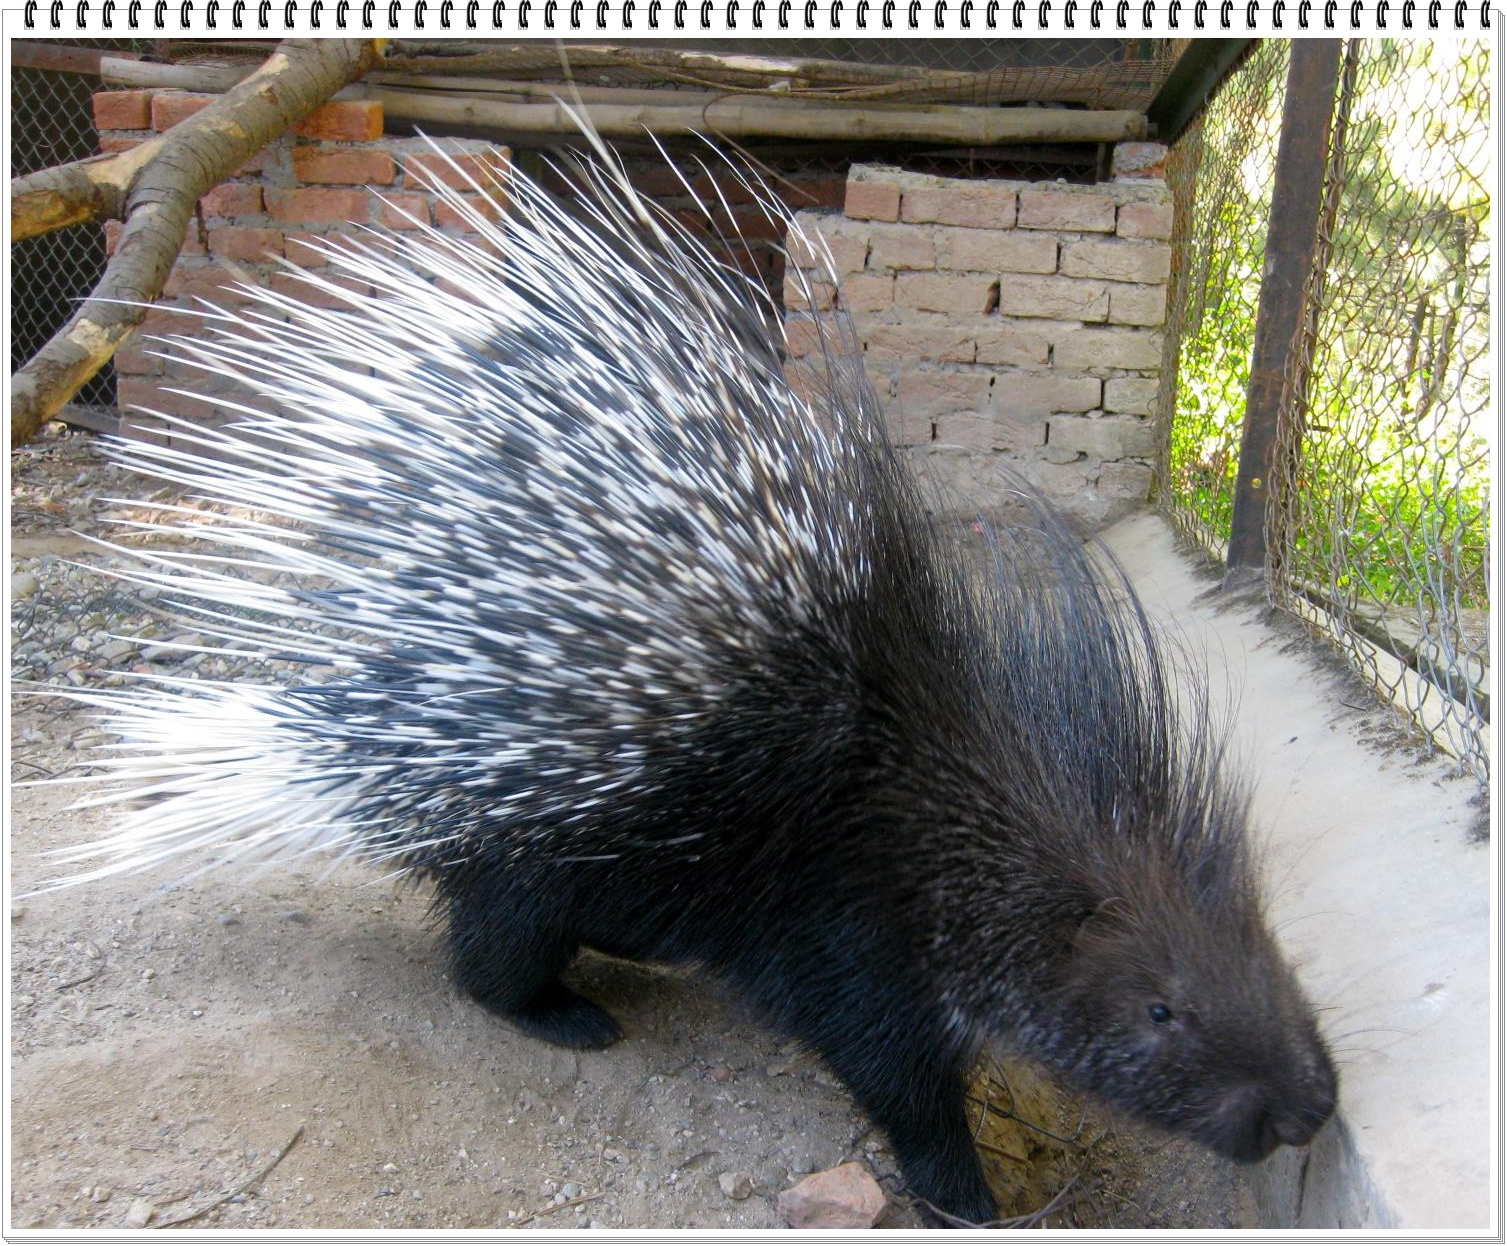 Witty Nity: porcupines.... The Animal with Quills